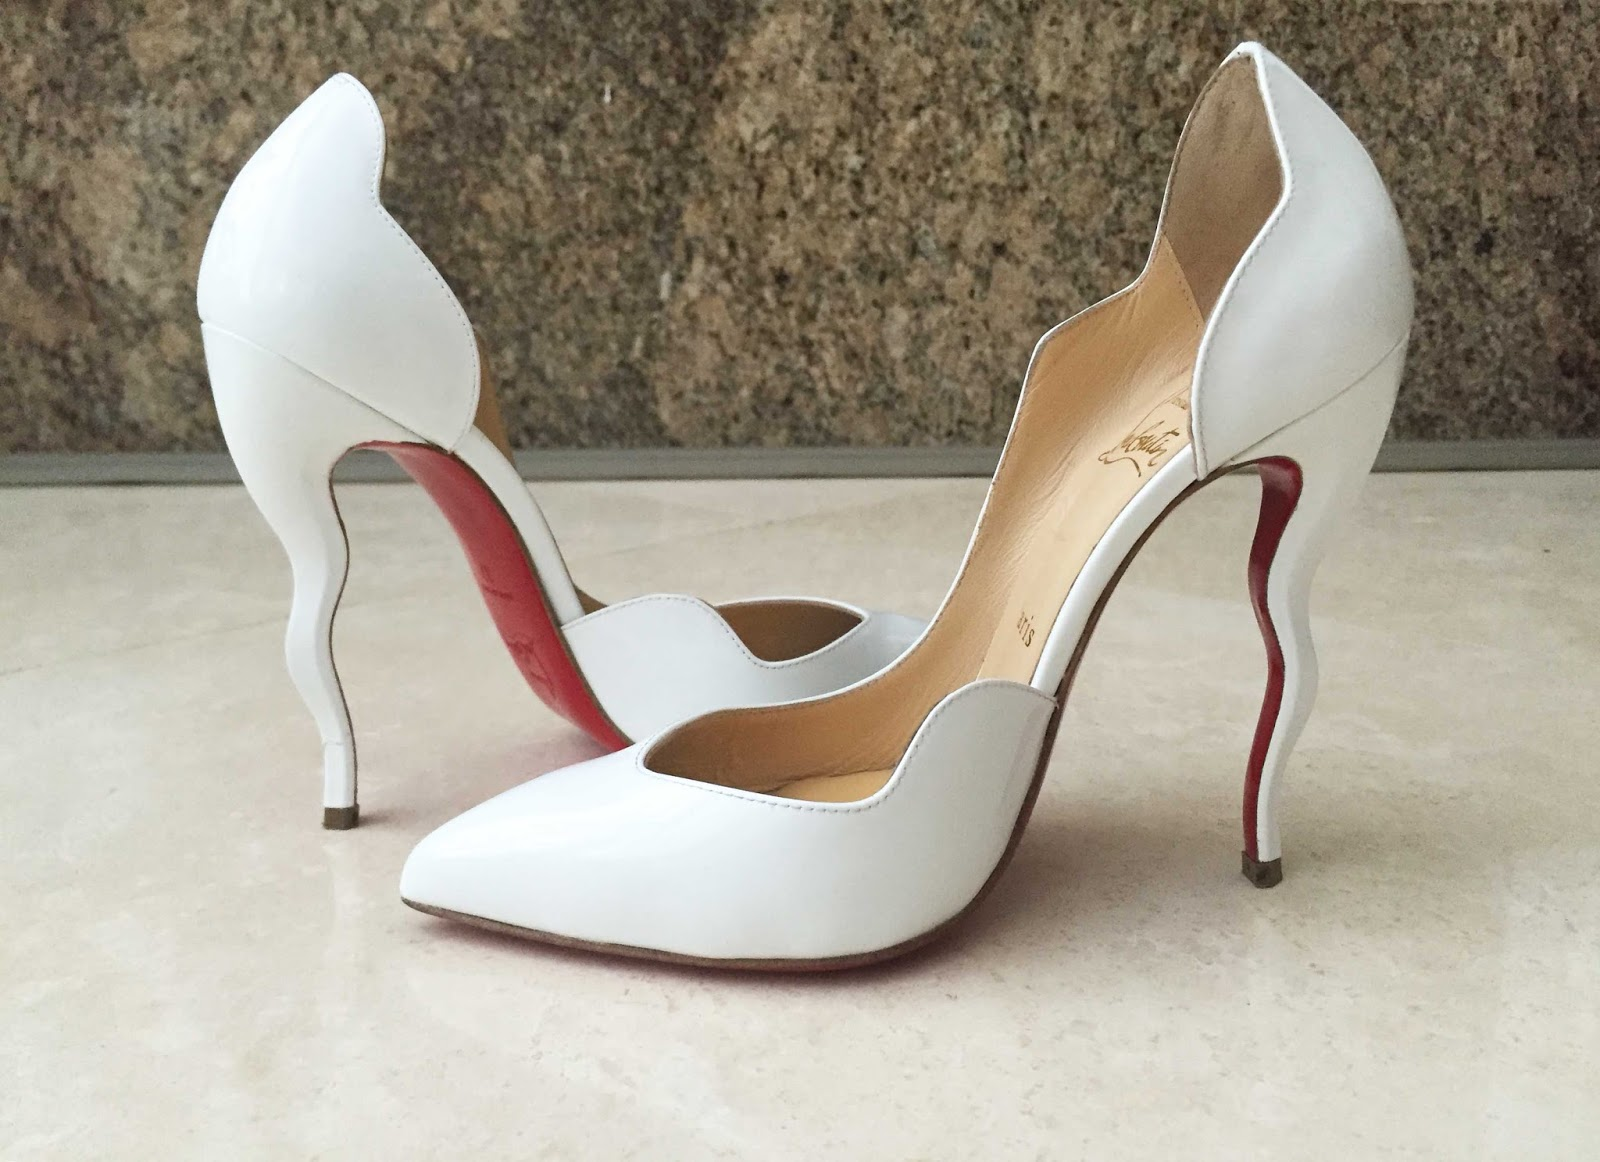 buy christian louboutin shoes on sale pink louboutins ebay